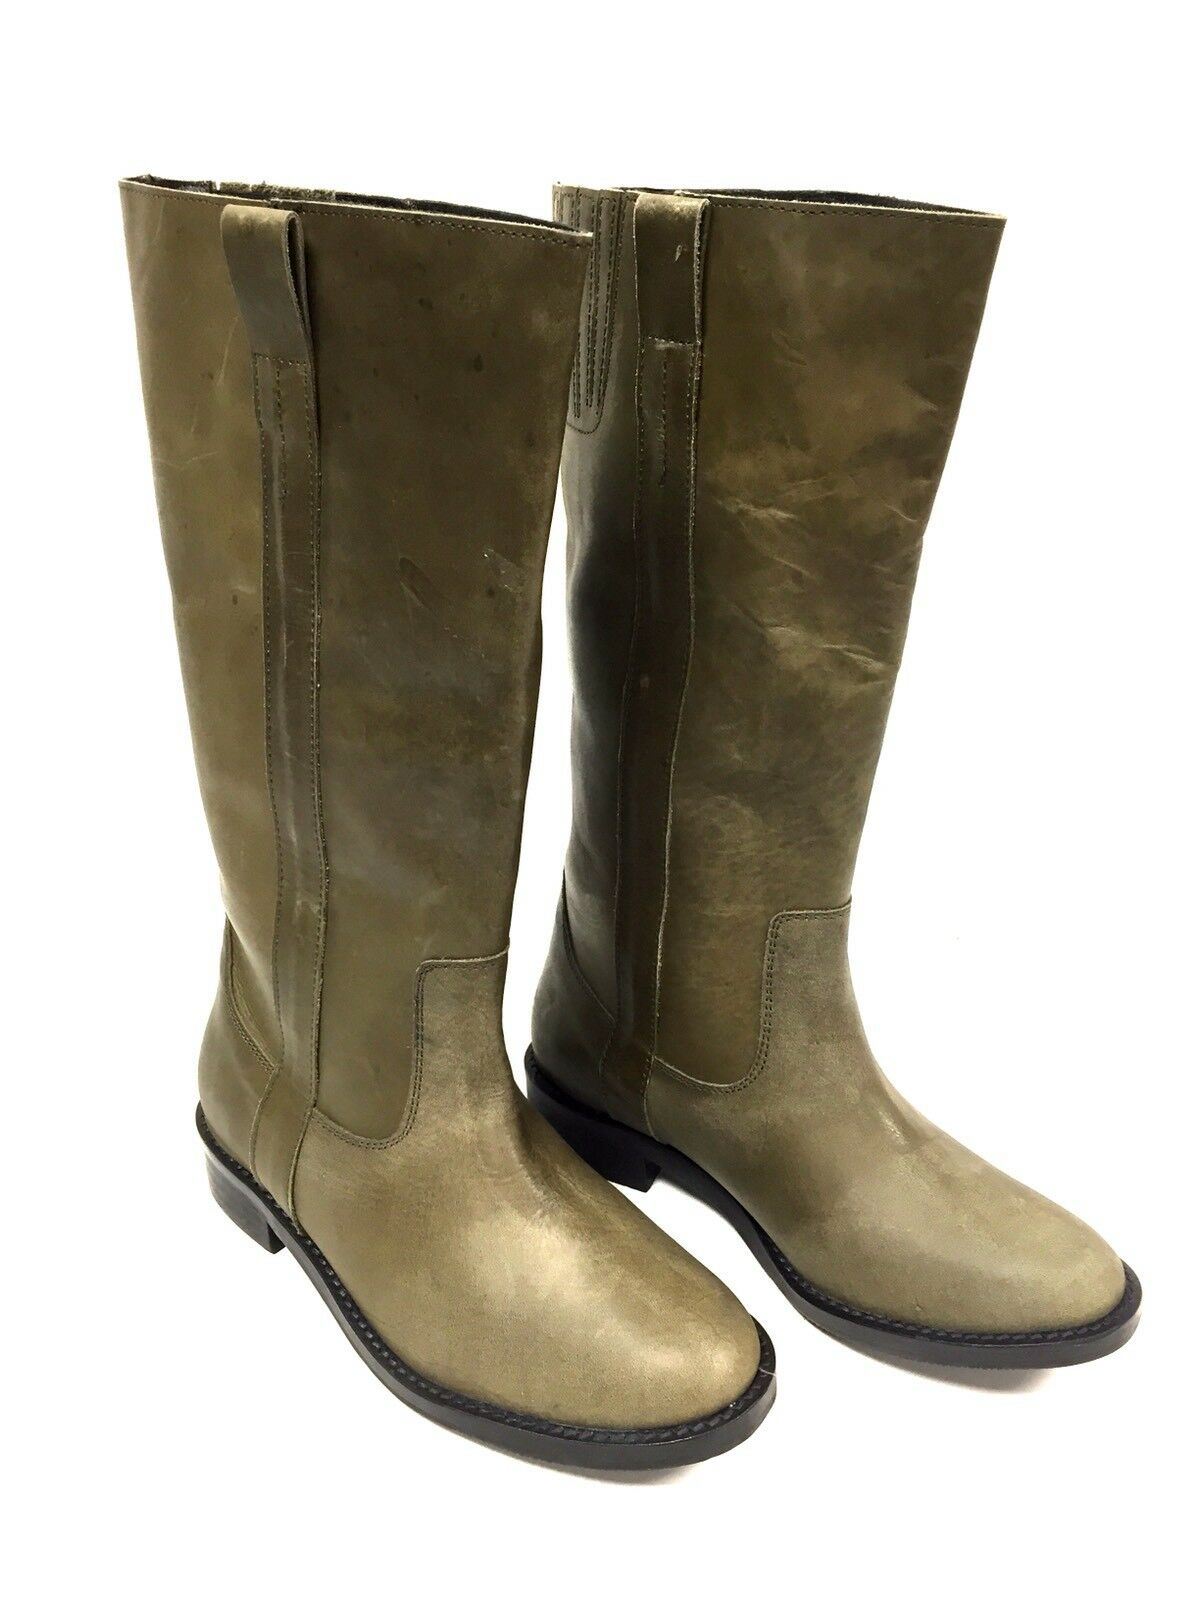 Bottes femme Cuir Kaki Buffalo London Taille Taille Taille 37 FR/ 6 US d1ad6f